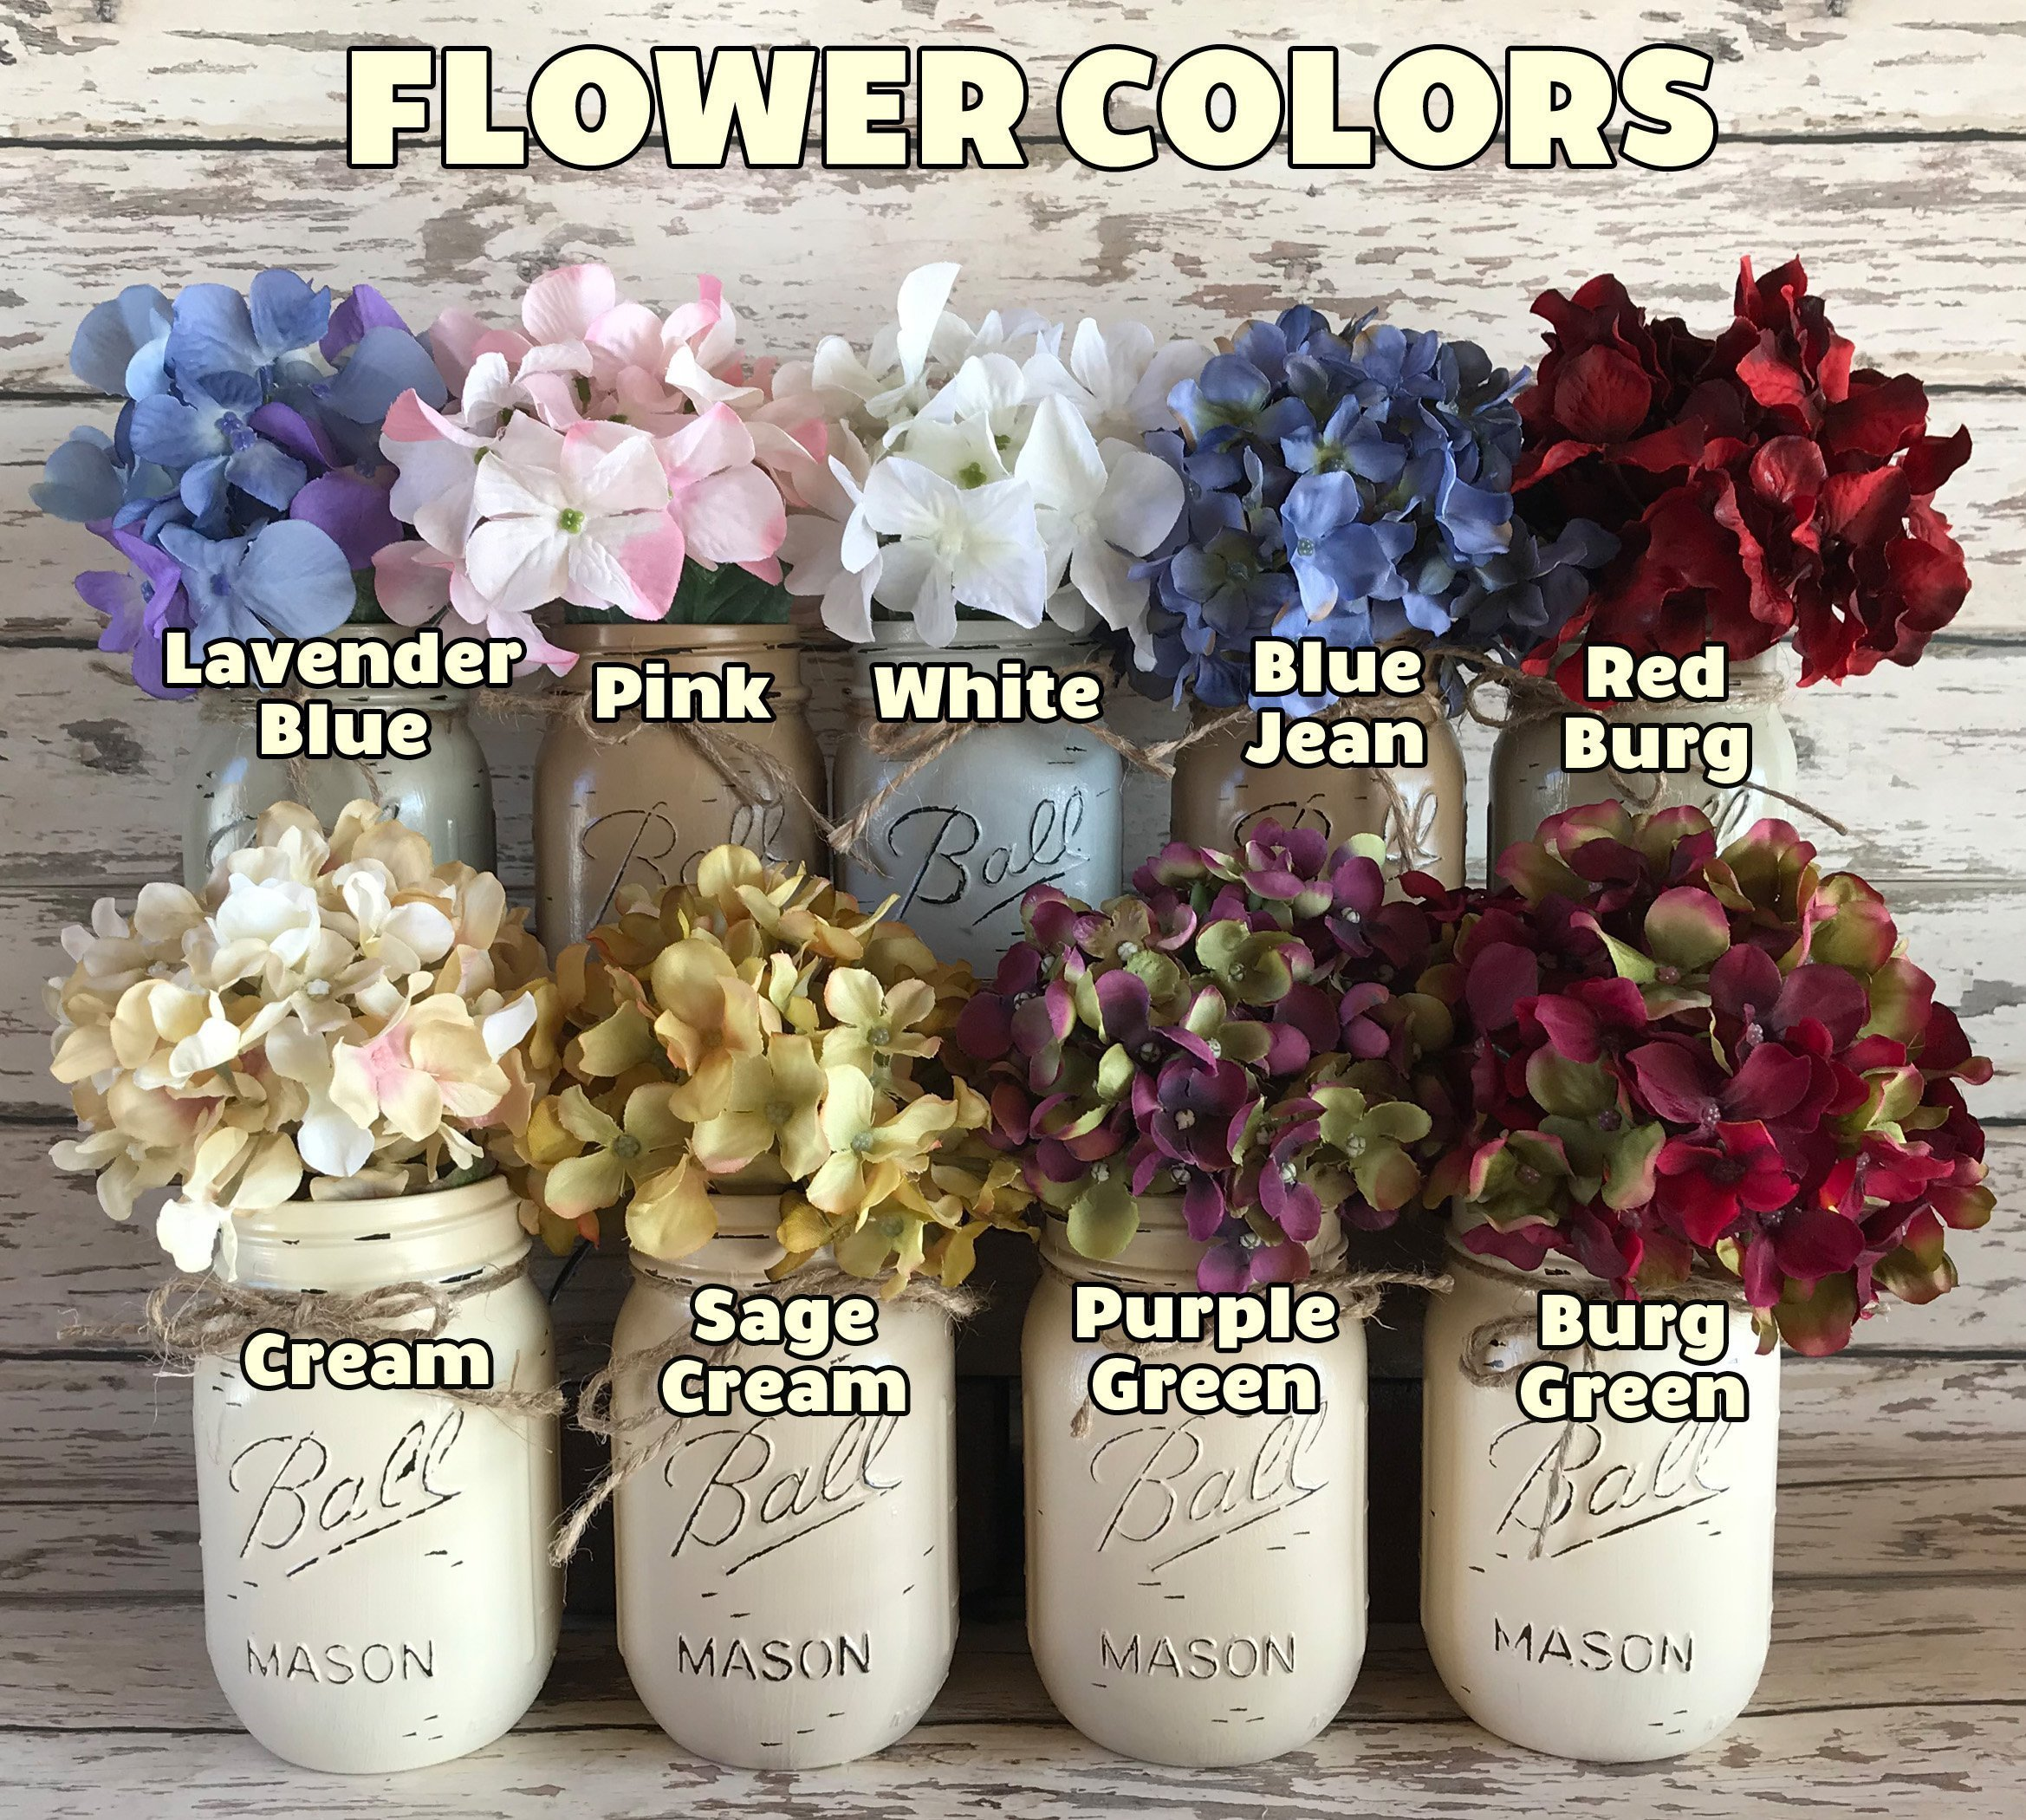 Mason Canning Jar Kitchen Farmhouse Table Centerpiece with 5 Hand Painted Ball QUART Jars in Distressed Wood Tray rusty handles *Antique White Red Brown Blue -BEAUTIFUL Hydrangea Flowers are optional by Wooden Hearts (Image #7)